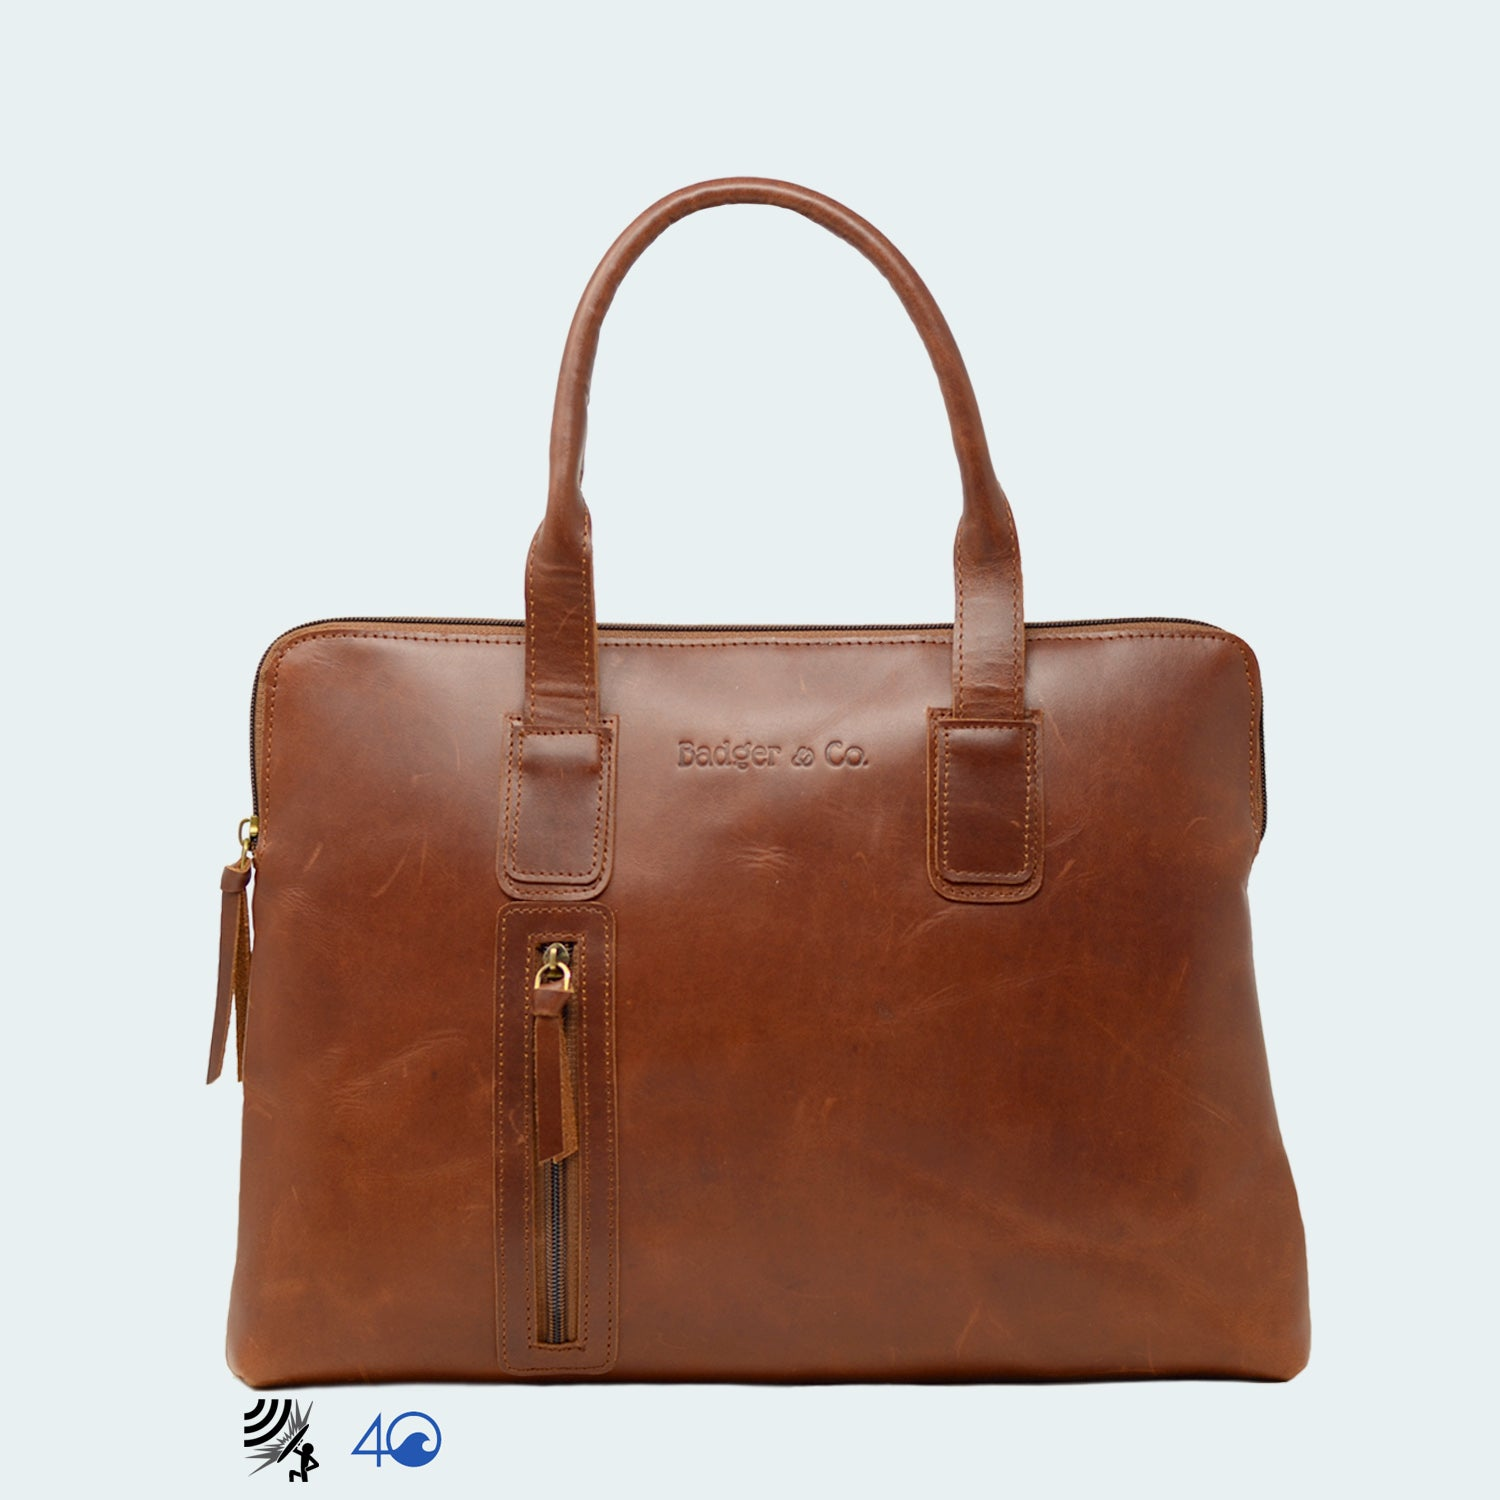 Leather Professtional Carryall - Cognac Brown